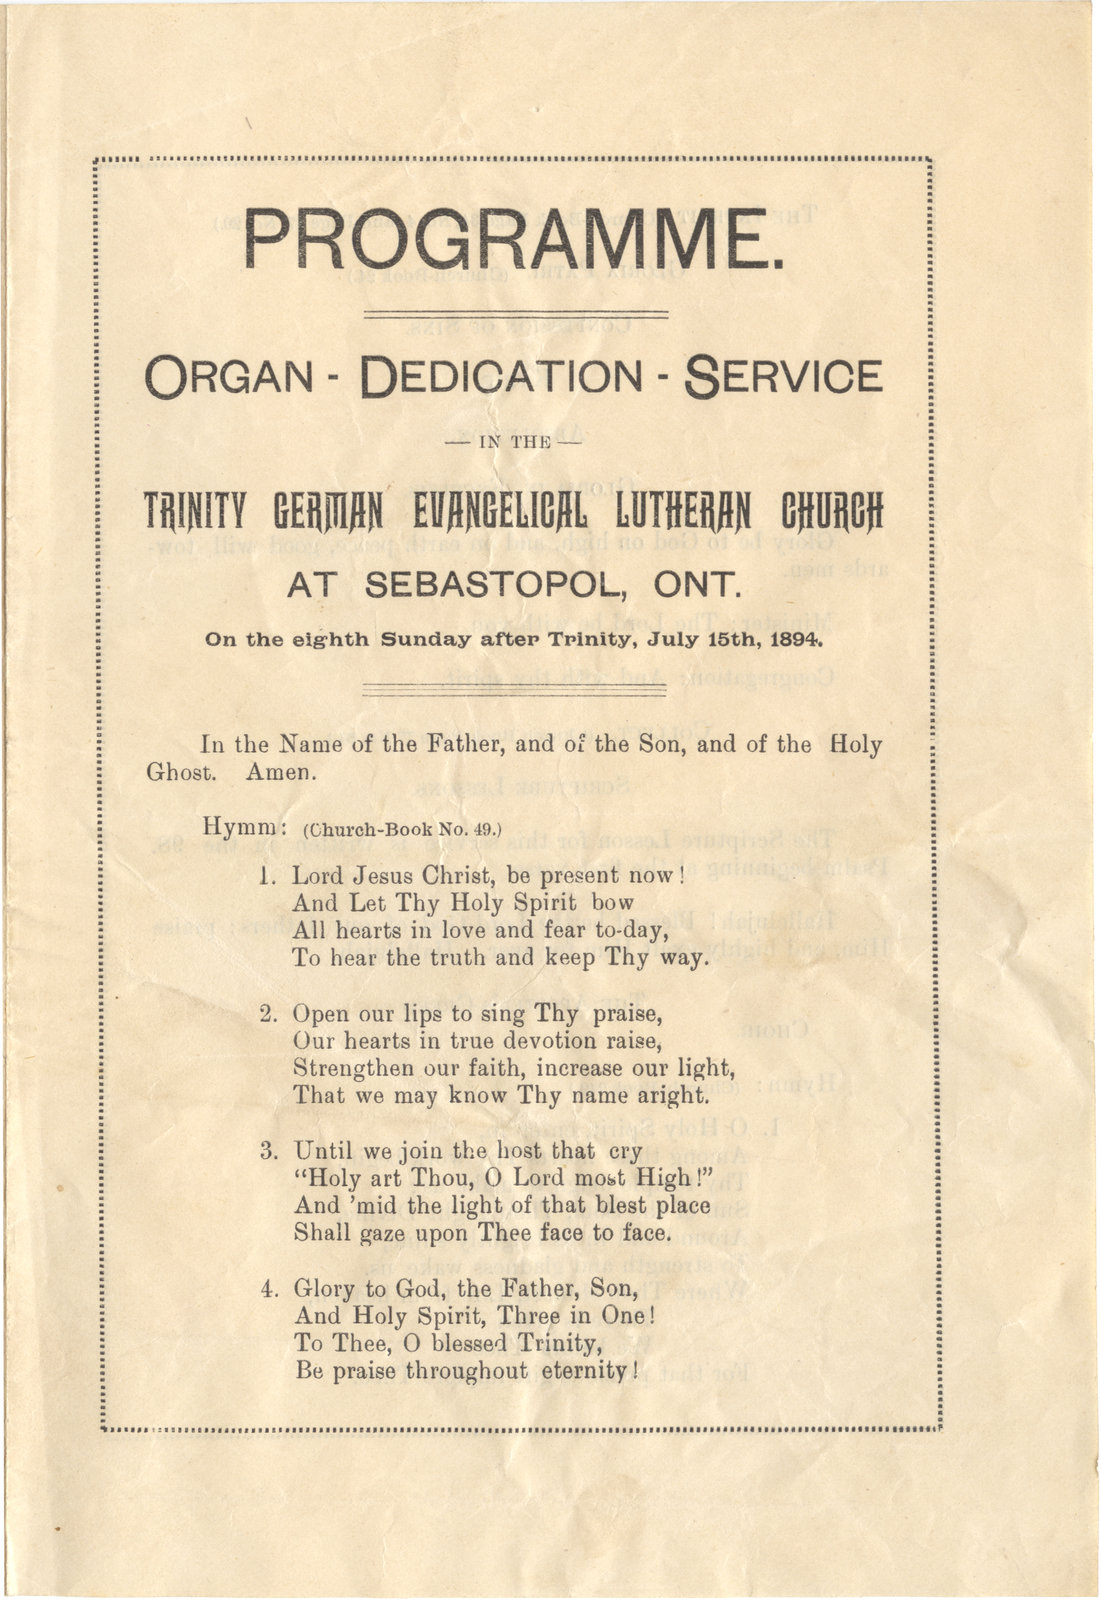 Programme : organ dedication service in the Trinity German Evangelical Lutheran Church at Sebastopol, Ont. on the eighth Sunday after Trinity, July 15th, 1894